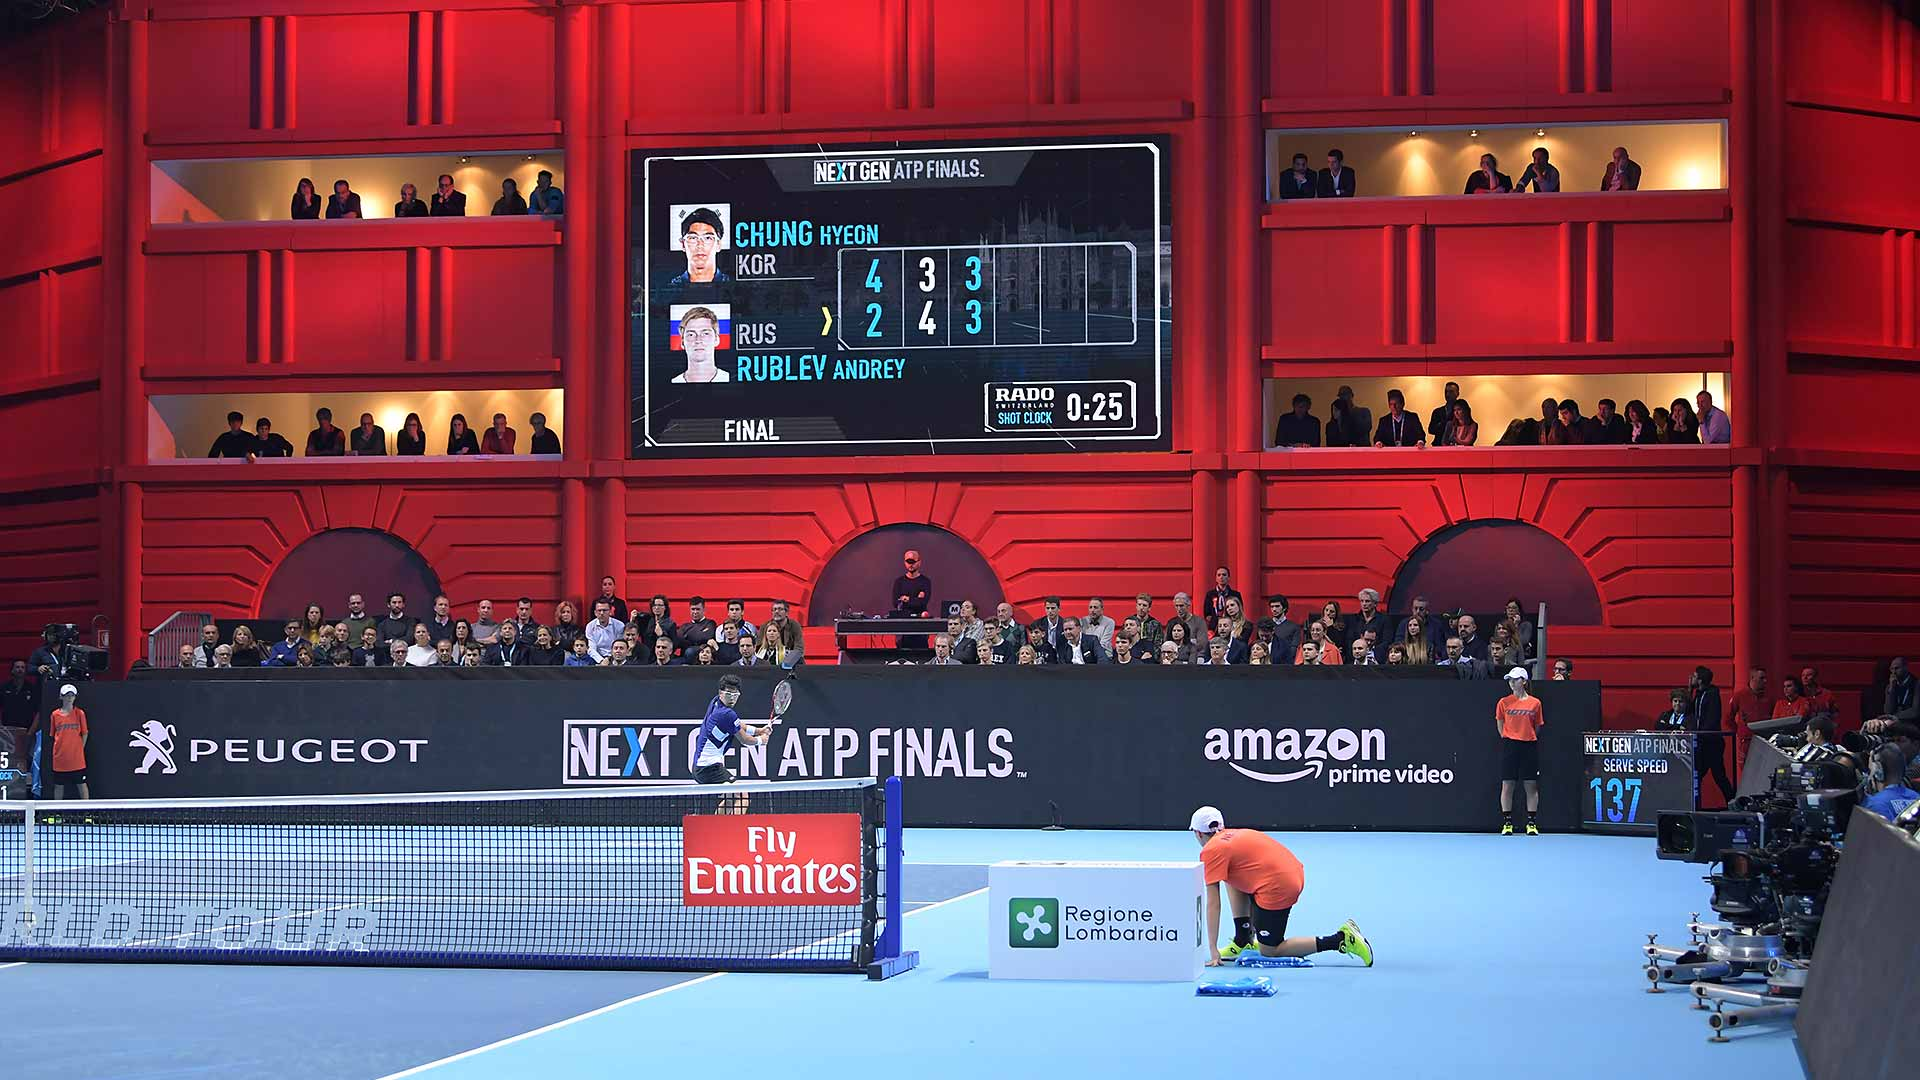 Shorter sets (first to four) was one of many innovations at the inaugural Next Gen ATP Finals.